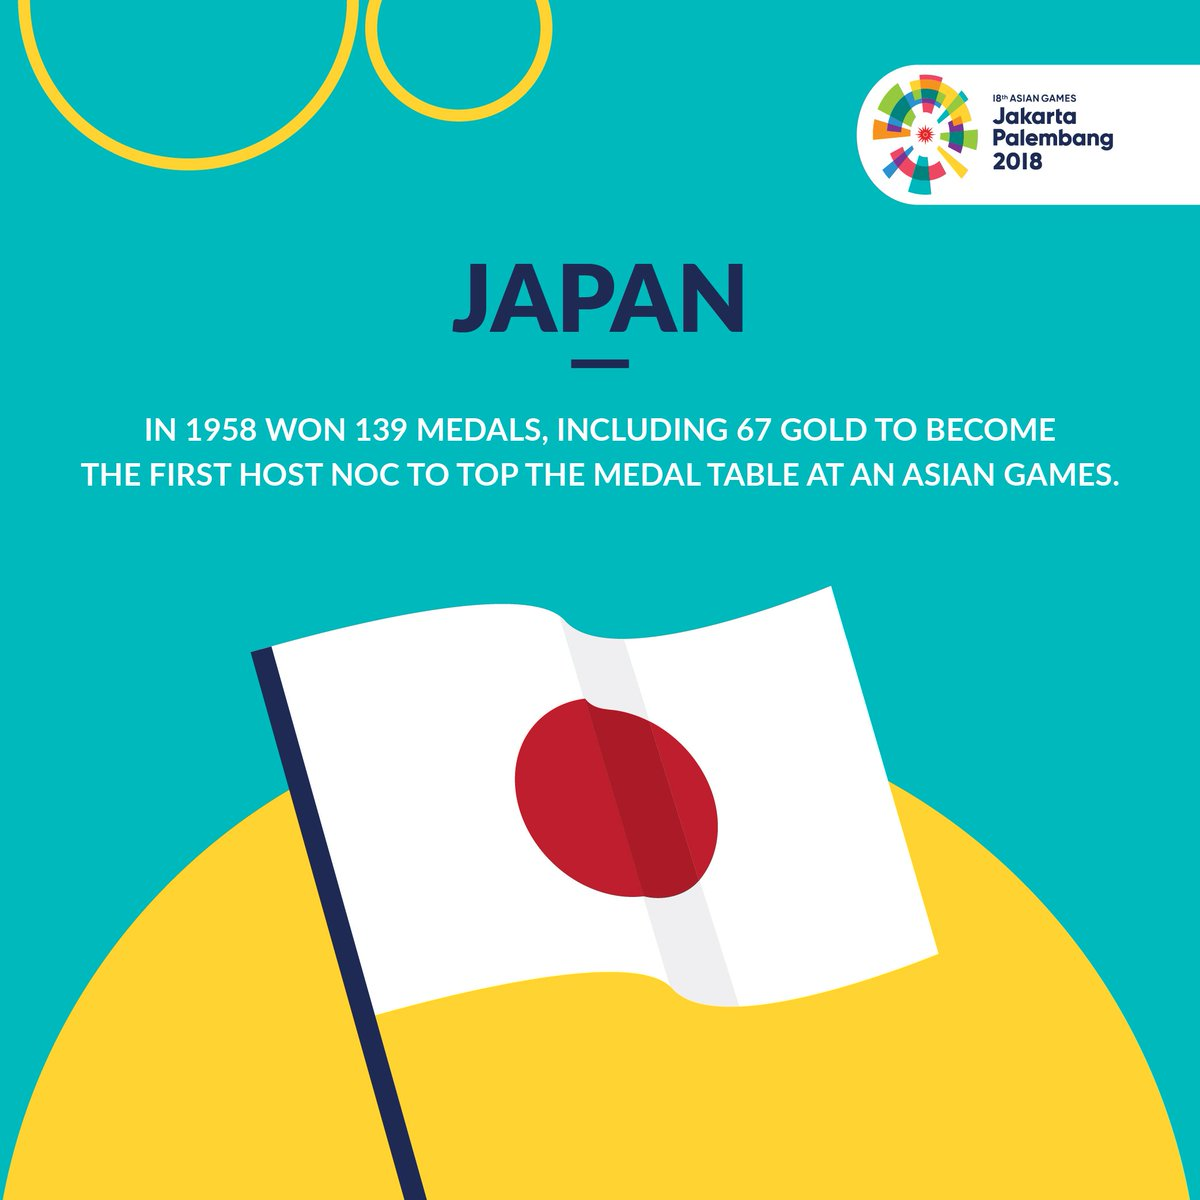 Asian Games  On Twitter Other Than Being One Of The Most Accomplished Countries In Asian Games History What Facts Do You Know About Japan